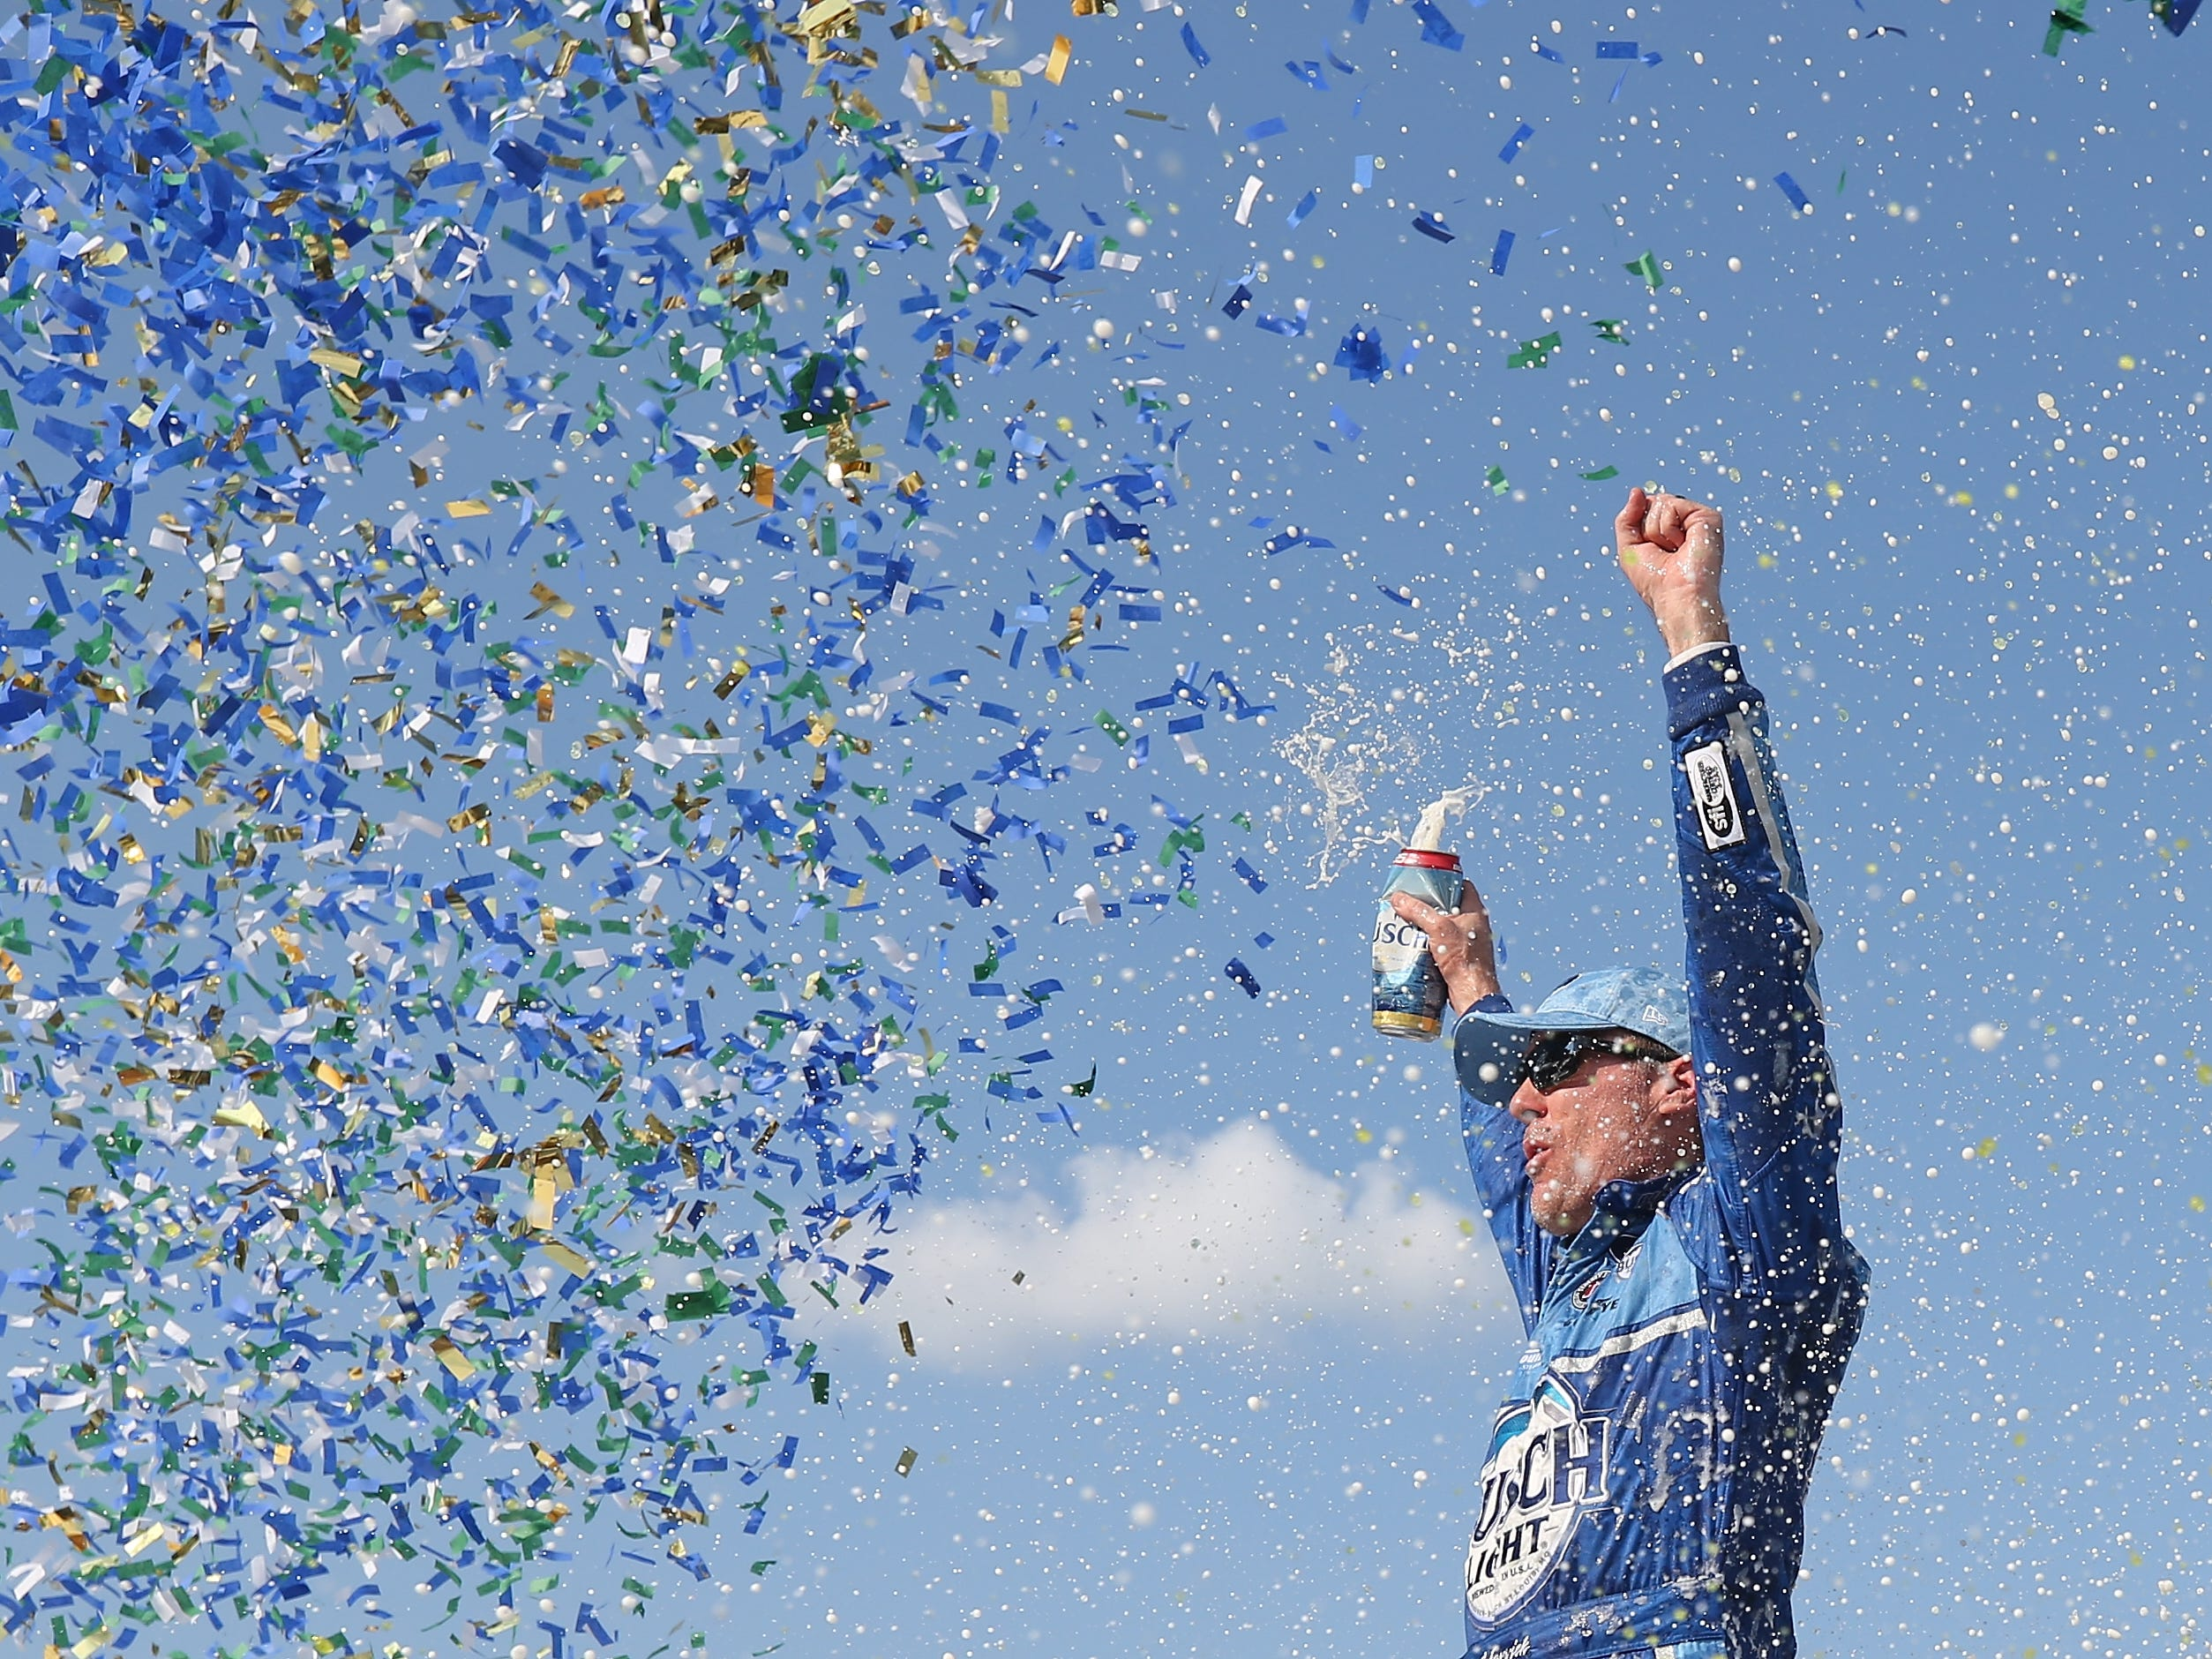 Kevin Harvick, driver of the #4 Busch Light/Mobil 1 Ford, celebrates in Victory Lane after winning the Monster Energy NASCAR Cup Series Consmers Energy 400 at Michigan International Speedway on August 12, 2018 in Brooklyn, Michigan.